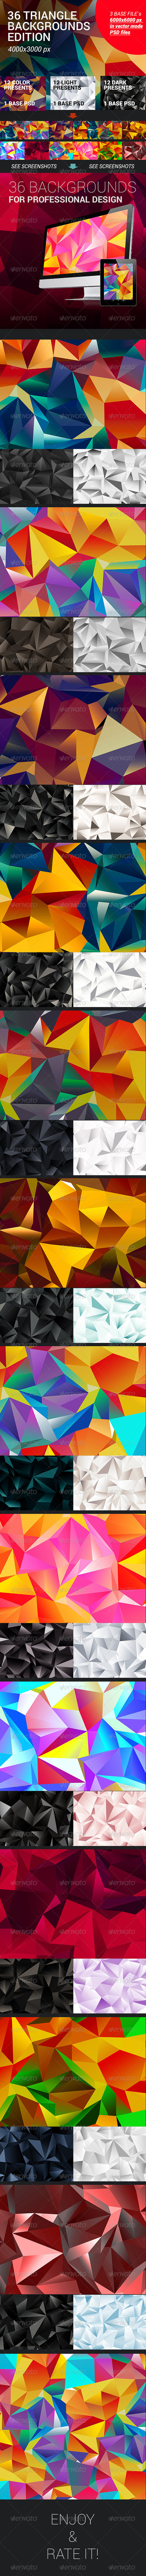 36 Mega Set Flat Triangle Backgrounds